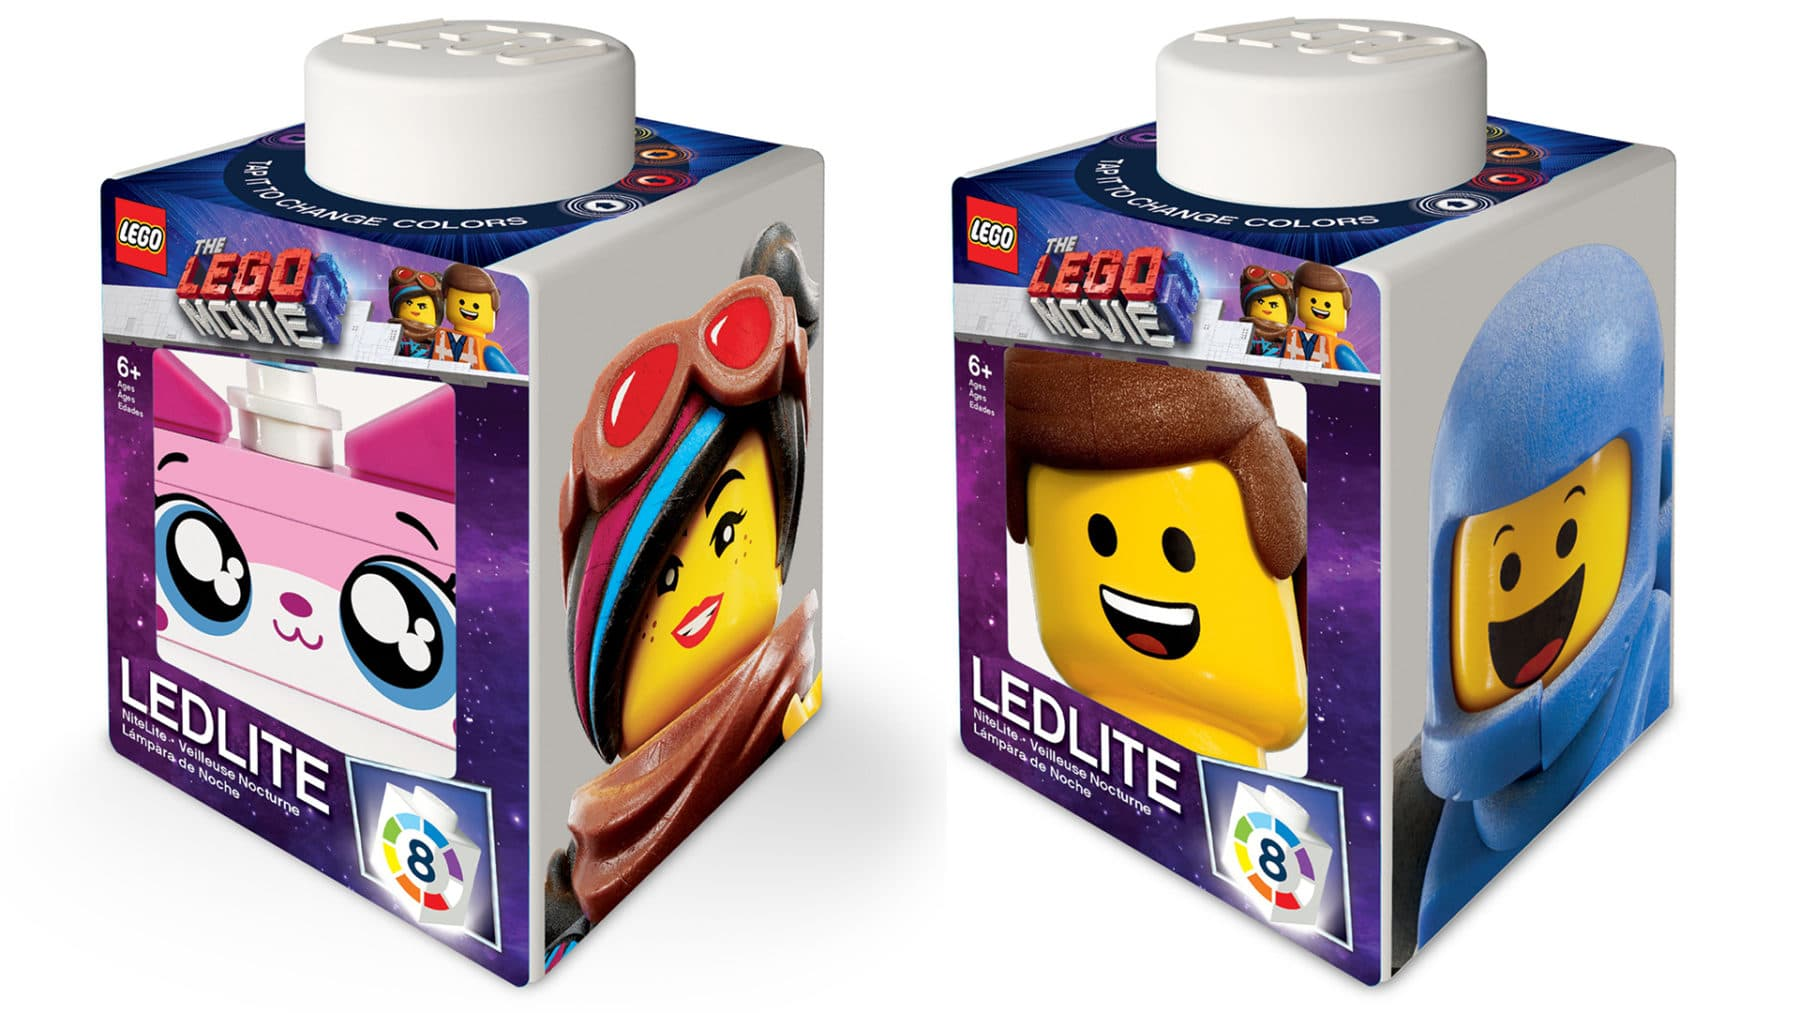 The LEGO Movie 2 LED Lichter